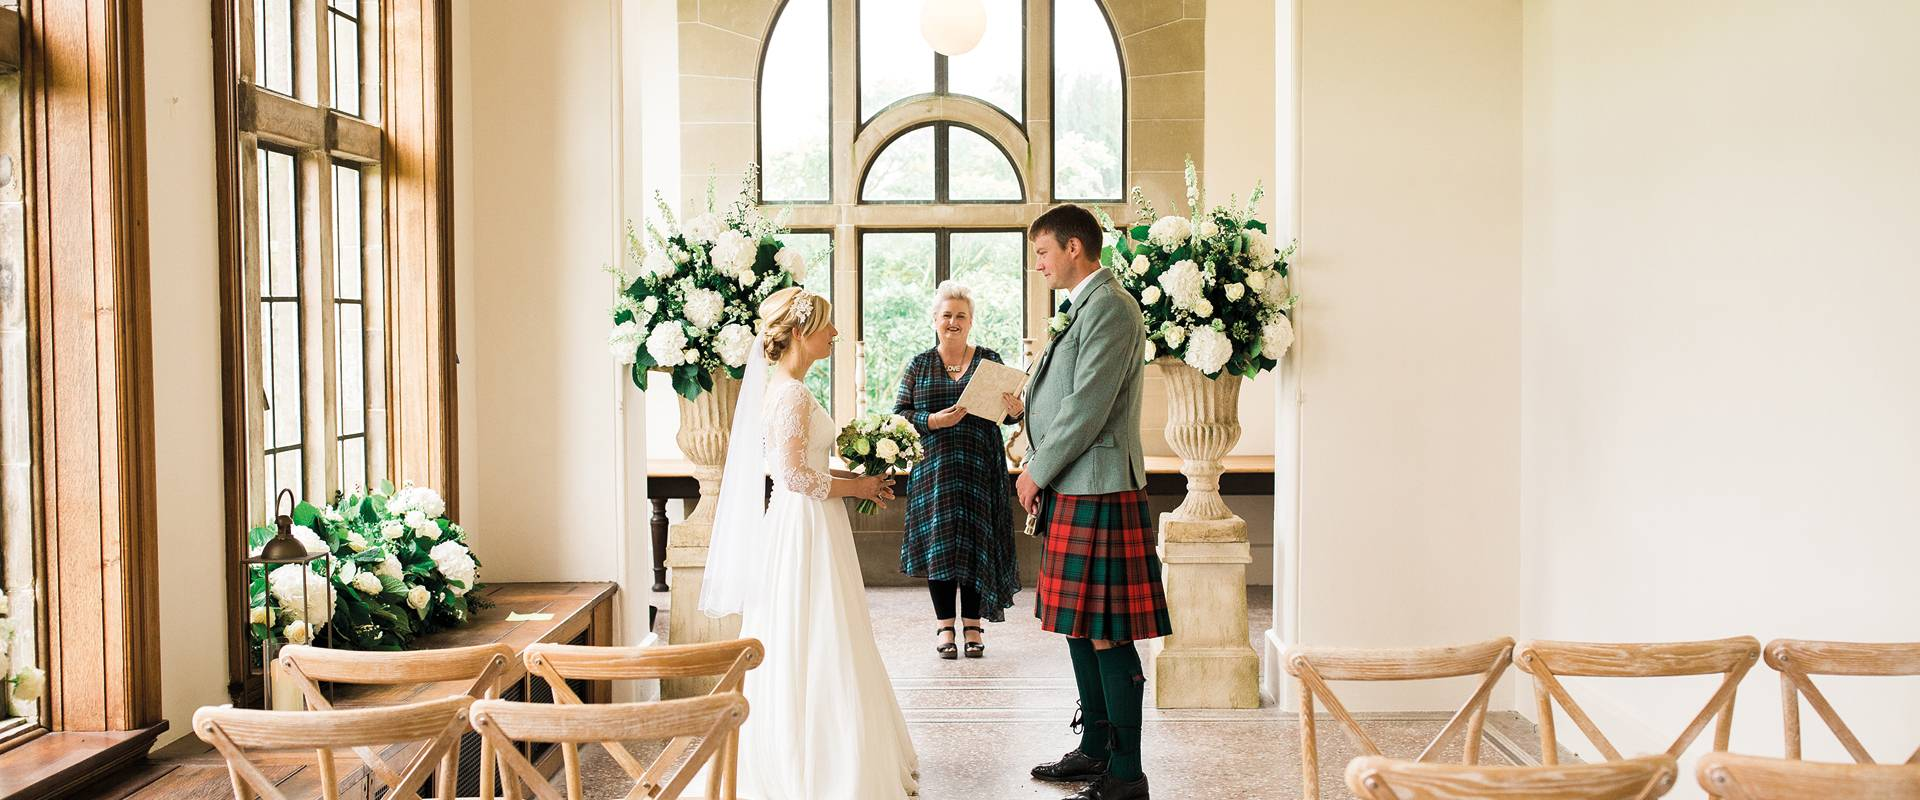 Couple getting married in The Ballroom at Kinmount House